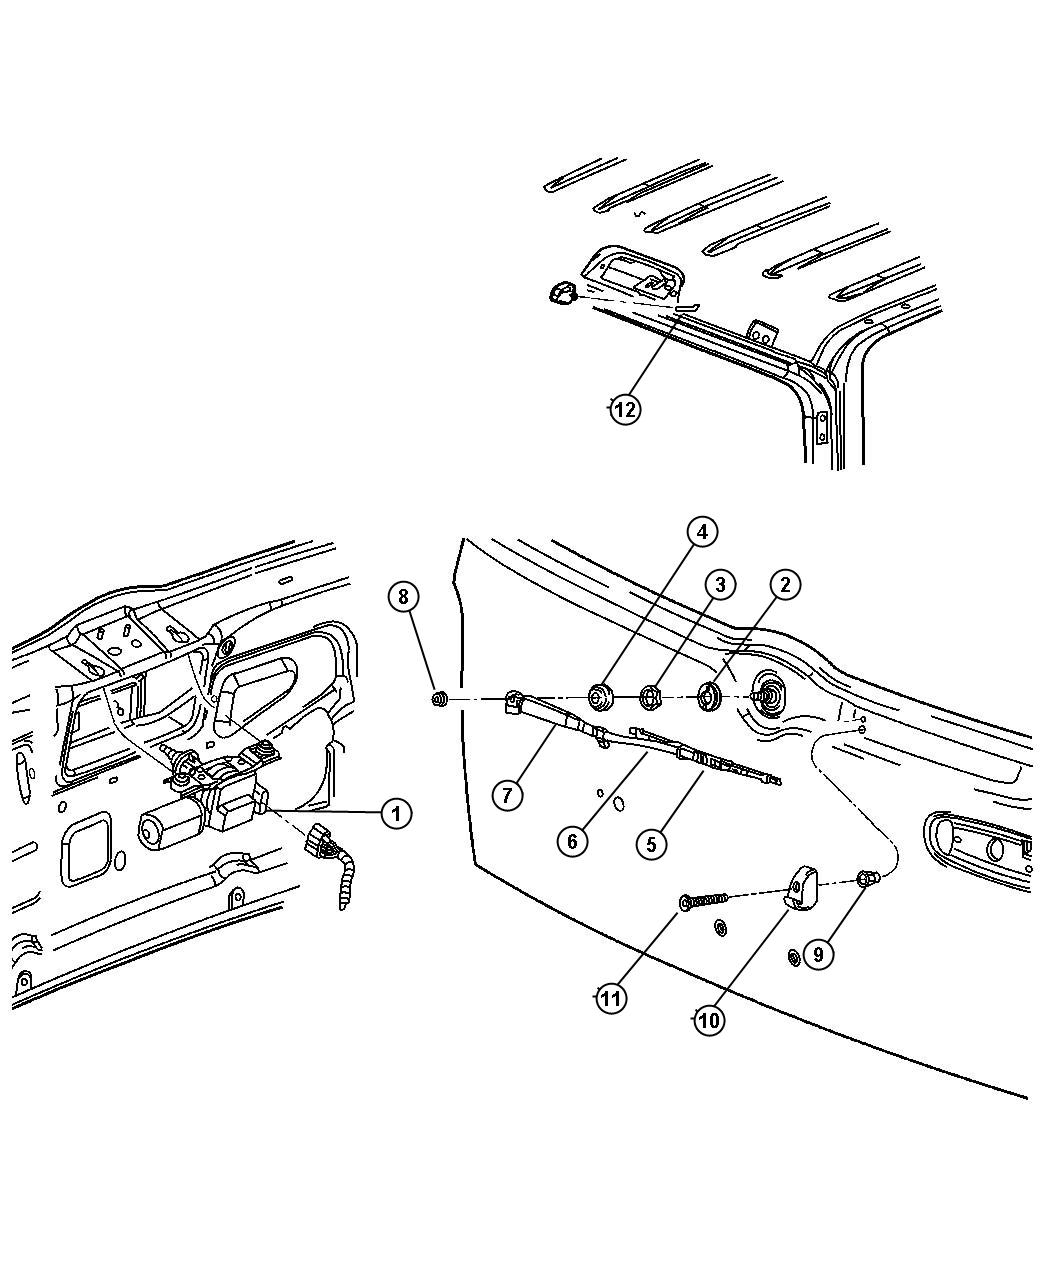 1996 jeep grand cherokee radio wiring diagram free picture